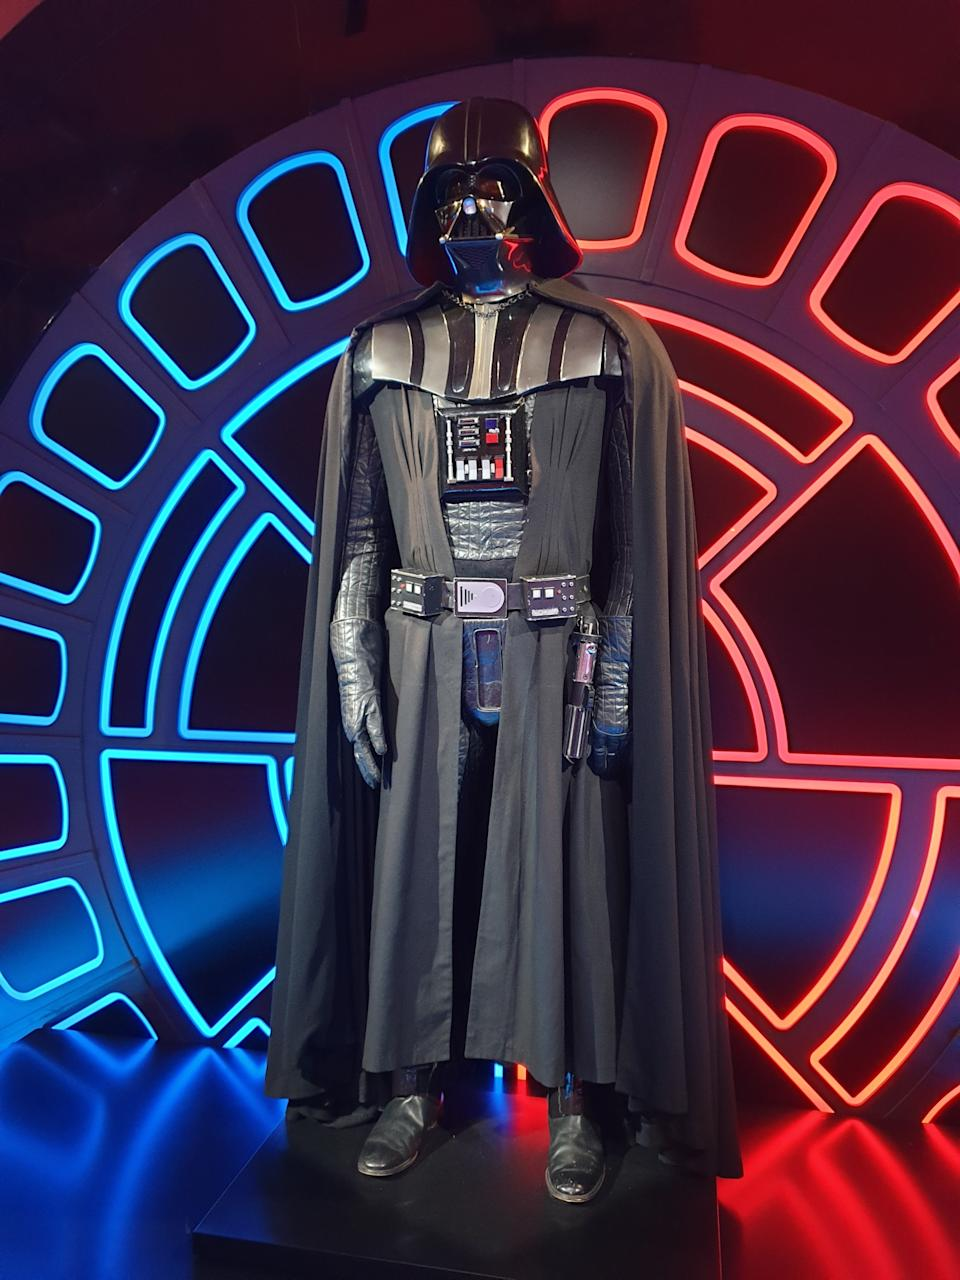 Costume of Darth Vader worn by David Prowse at the Star Wars Identities exhibition in Singapore at the Artscience Museum. (Photo: Teng Yong Ping)